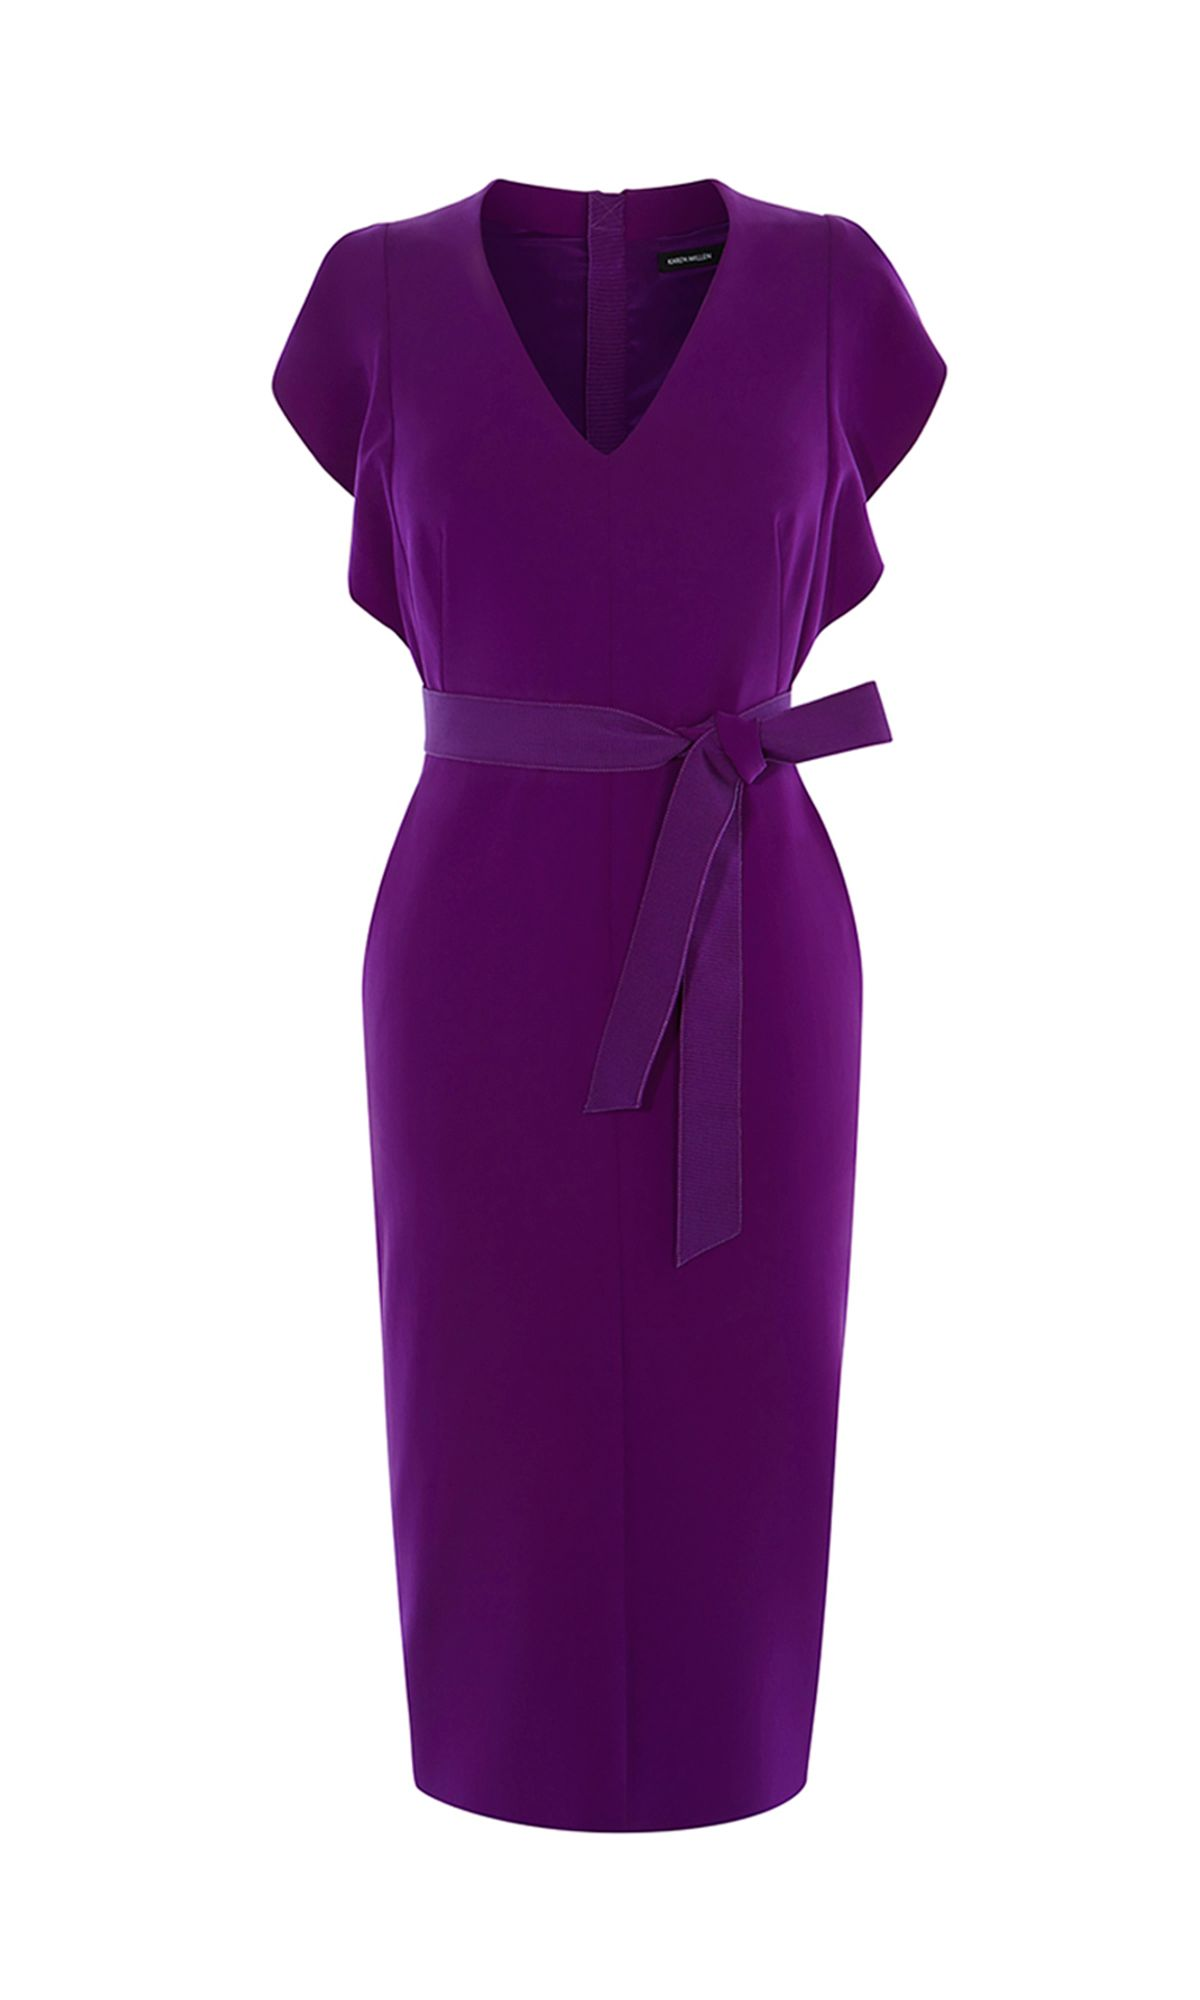 Karen Millen Frill Pencil Dress, Purple